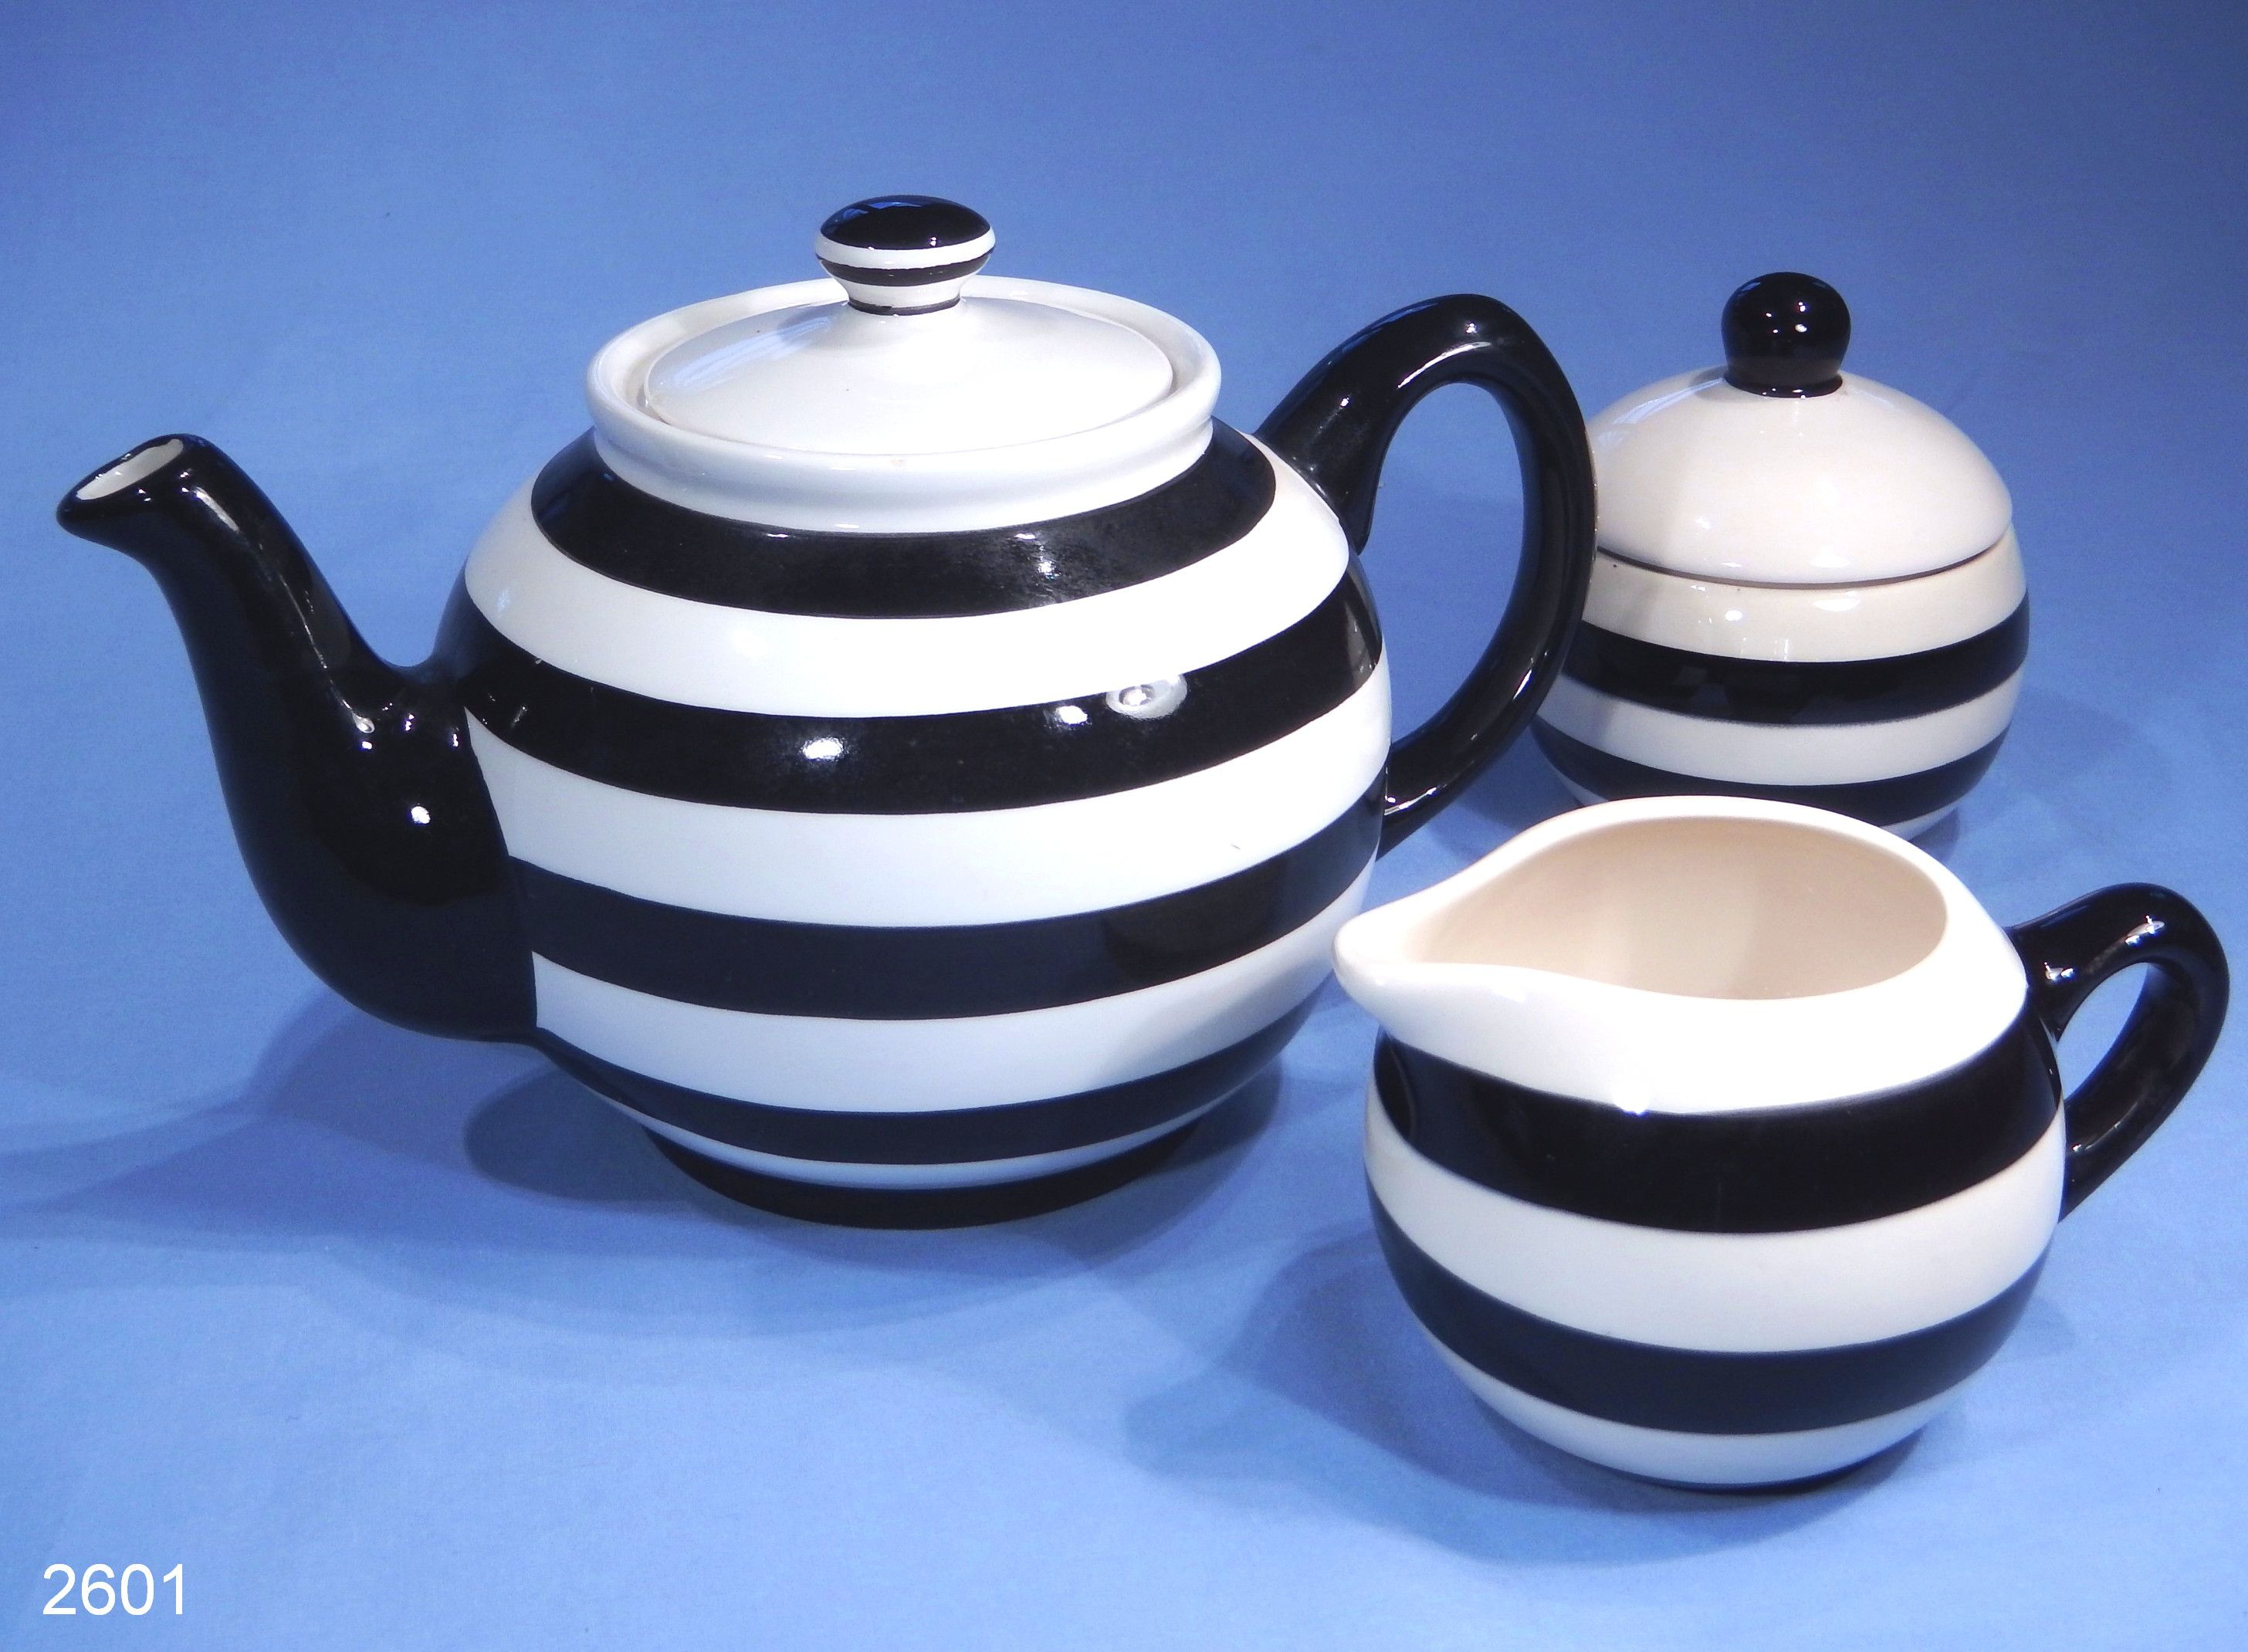 Sugar bowls with lids - Price Kensington Pristine Pottery Black And White Vintage Teapot Milk Jug And Sugar Bowl Set